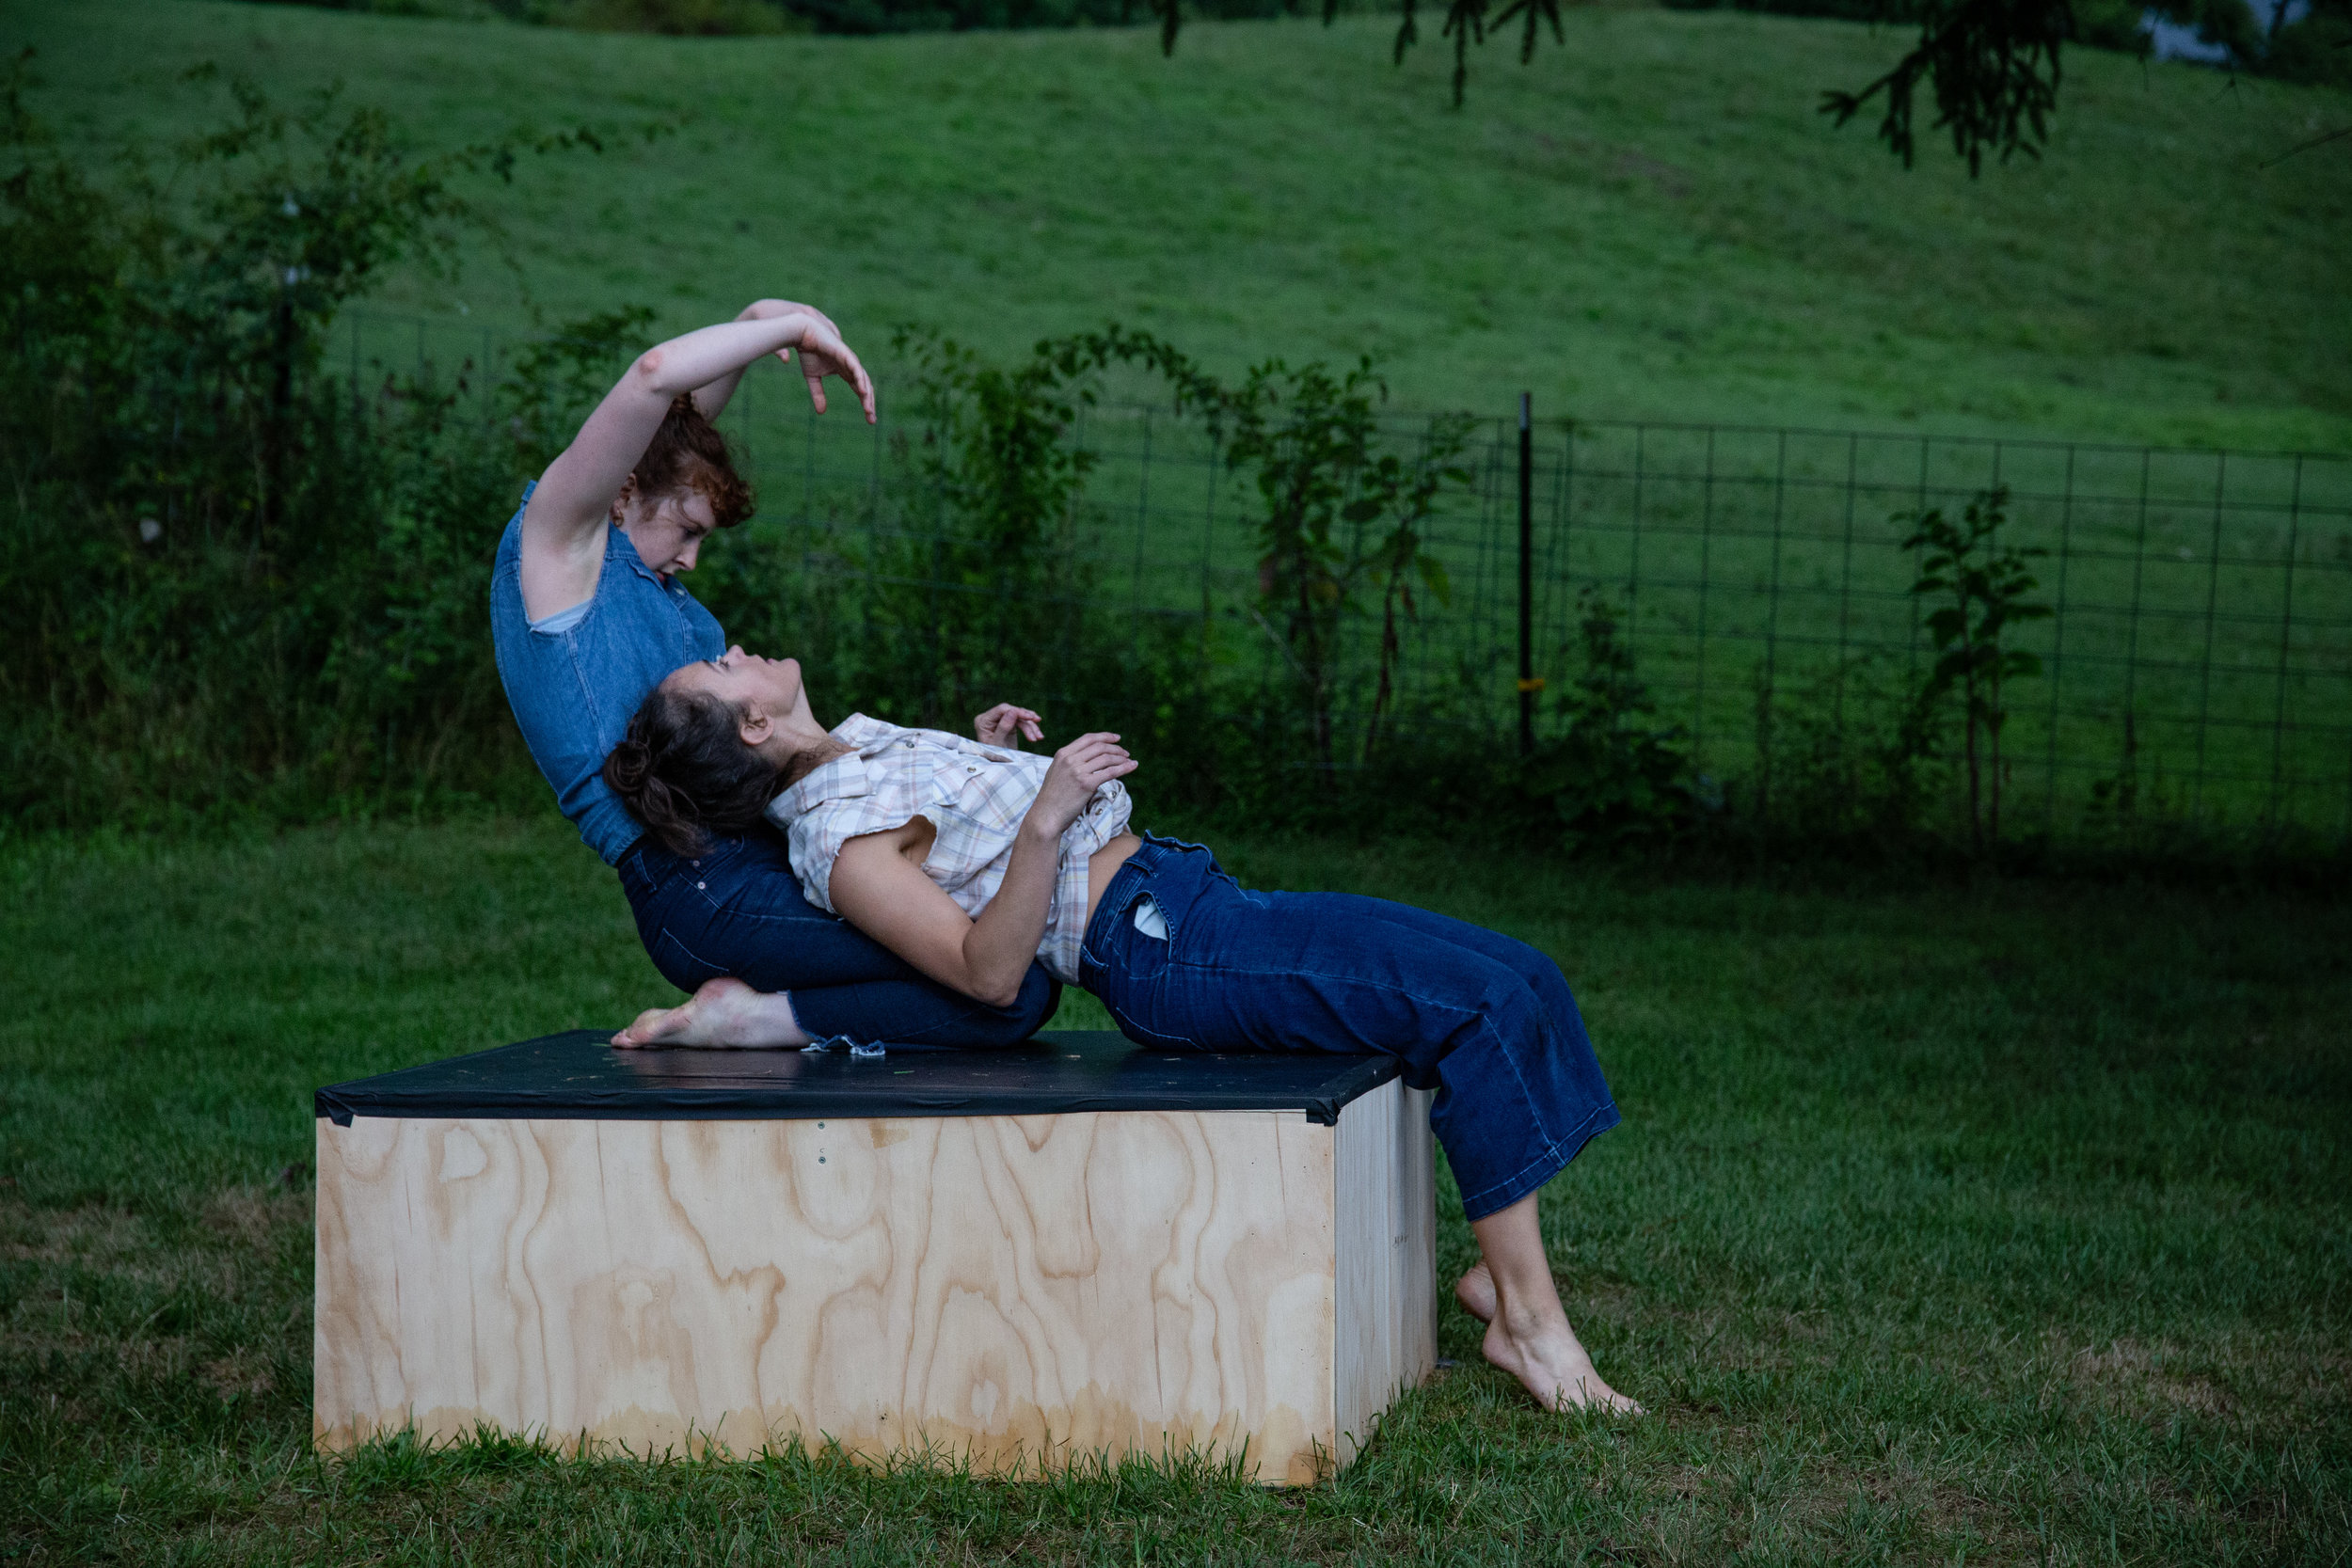 Connor Speetjens & Courtney Drasner in Wandering Camille (2019) Wassaic Summer Festival, photo by Tony Turner